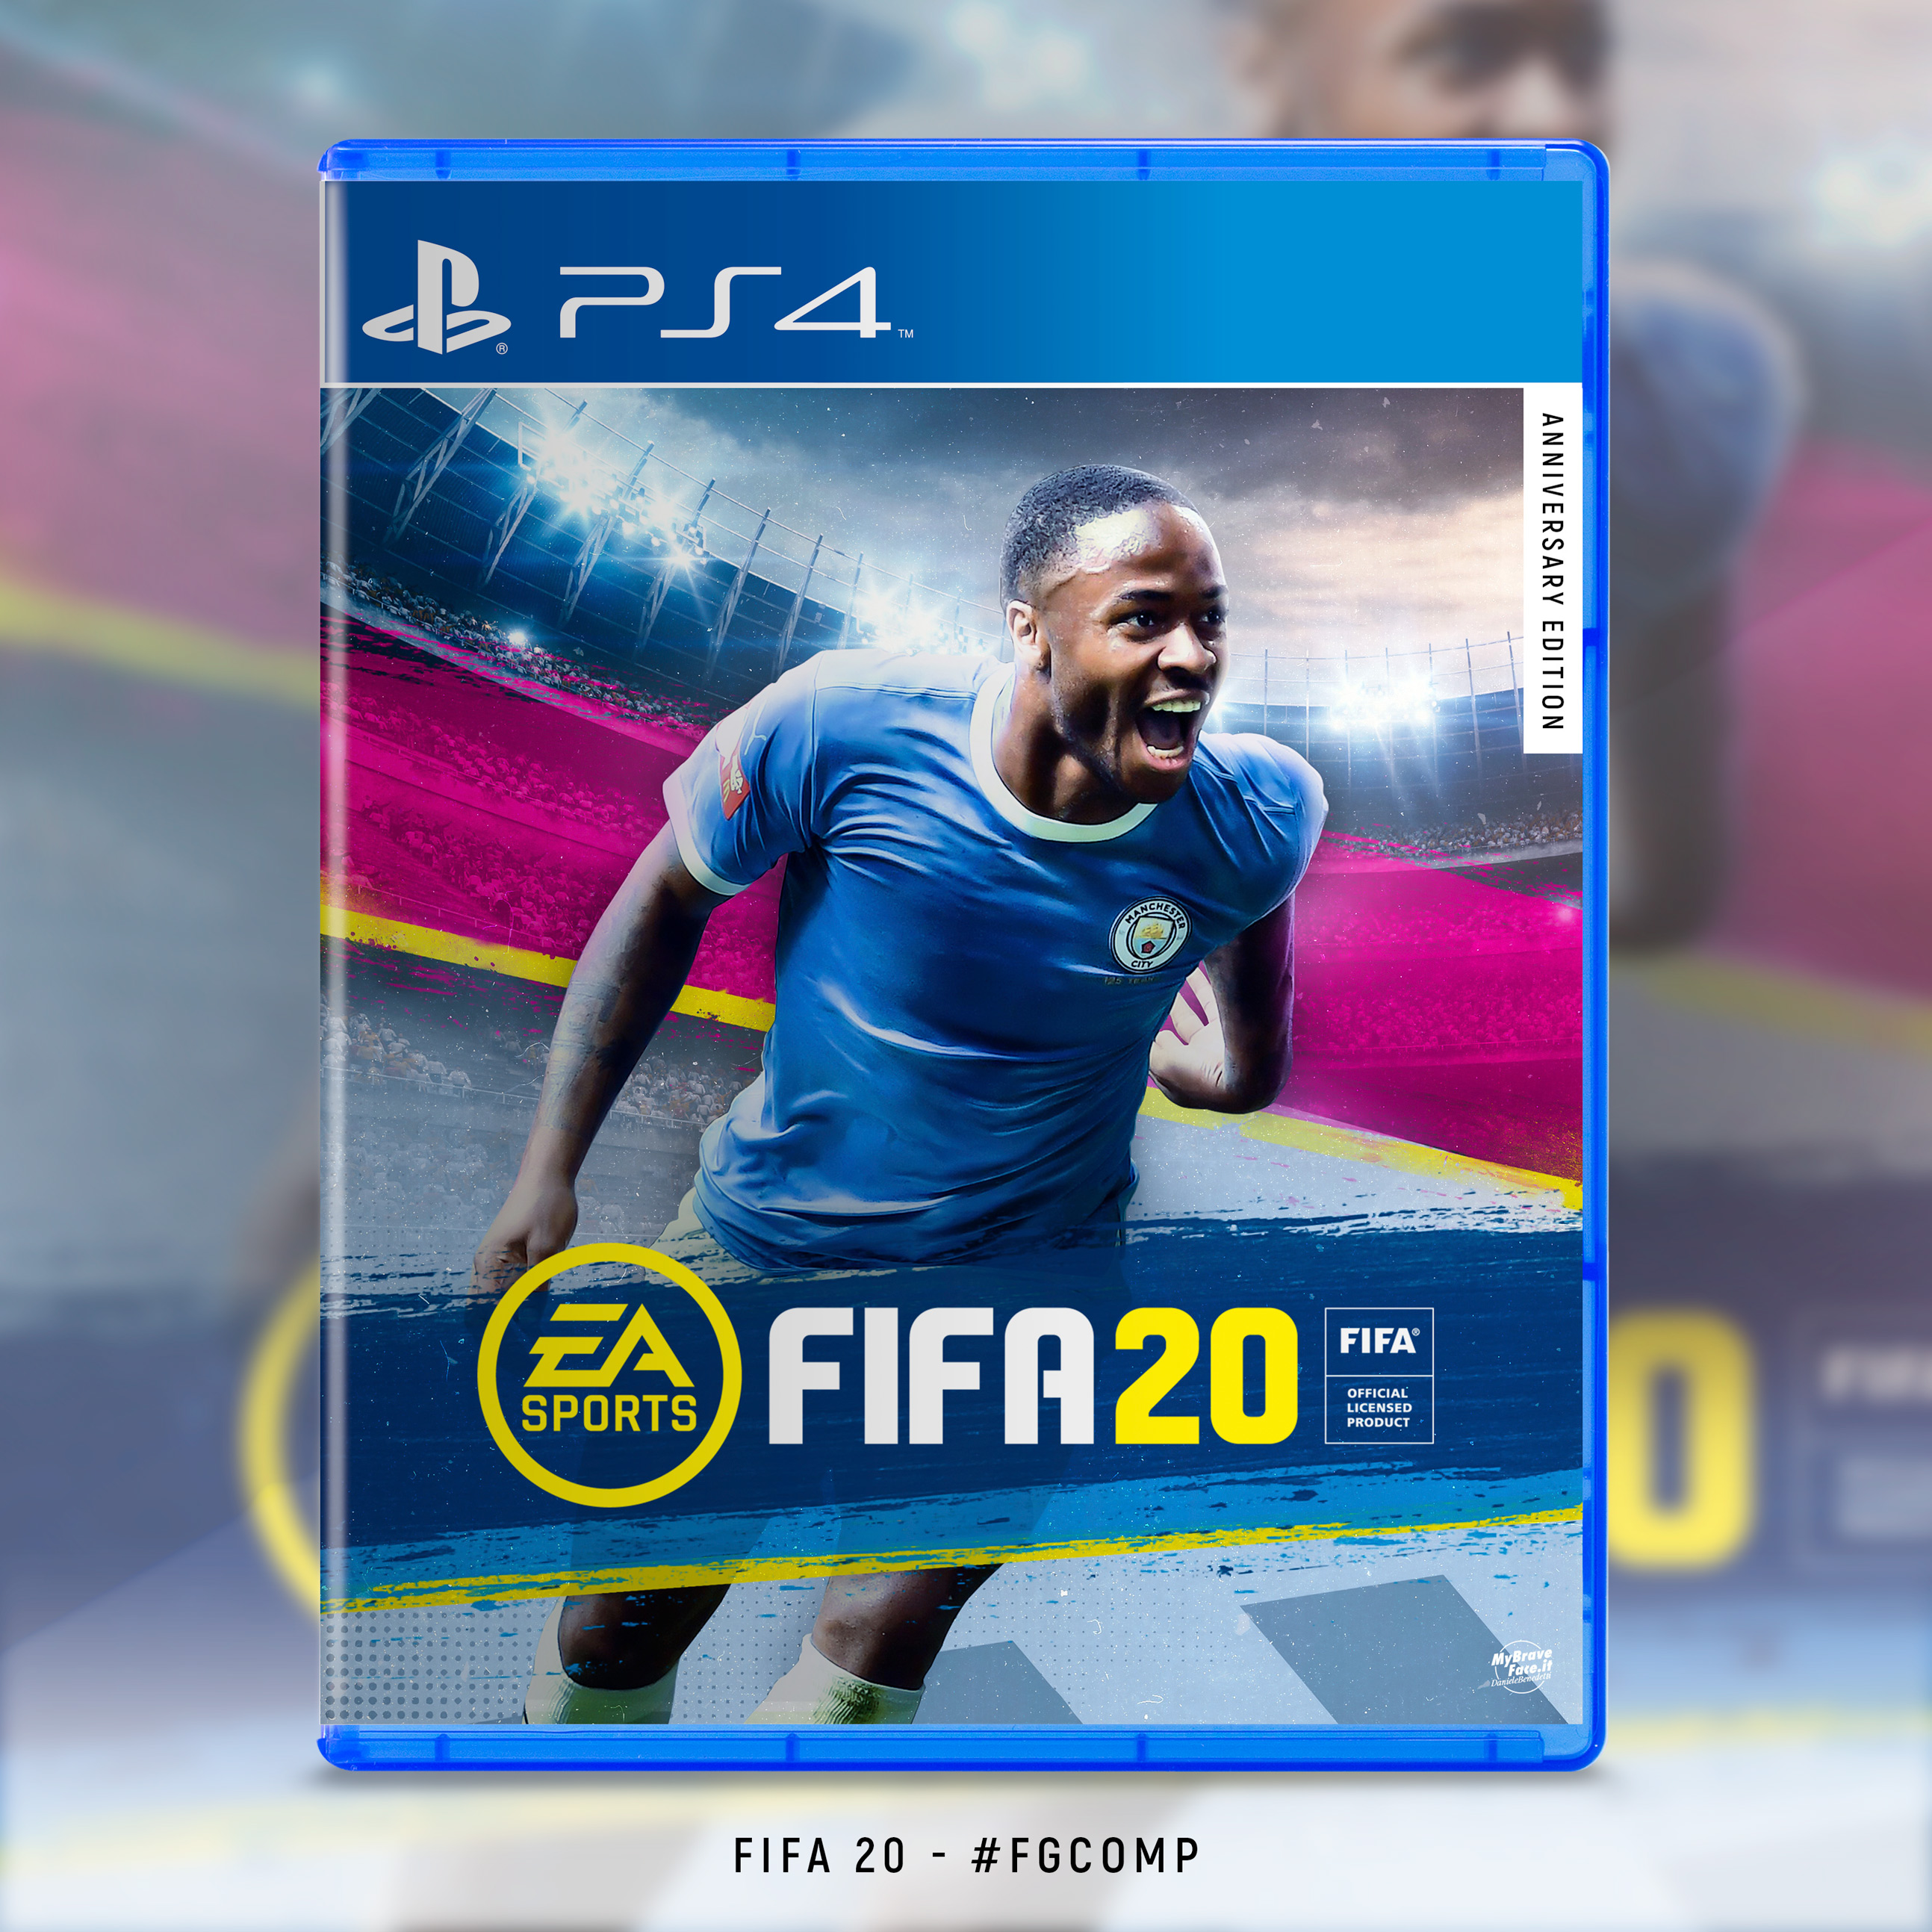 FIFA 20 - Anniversary Edition for #FGCompetition